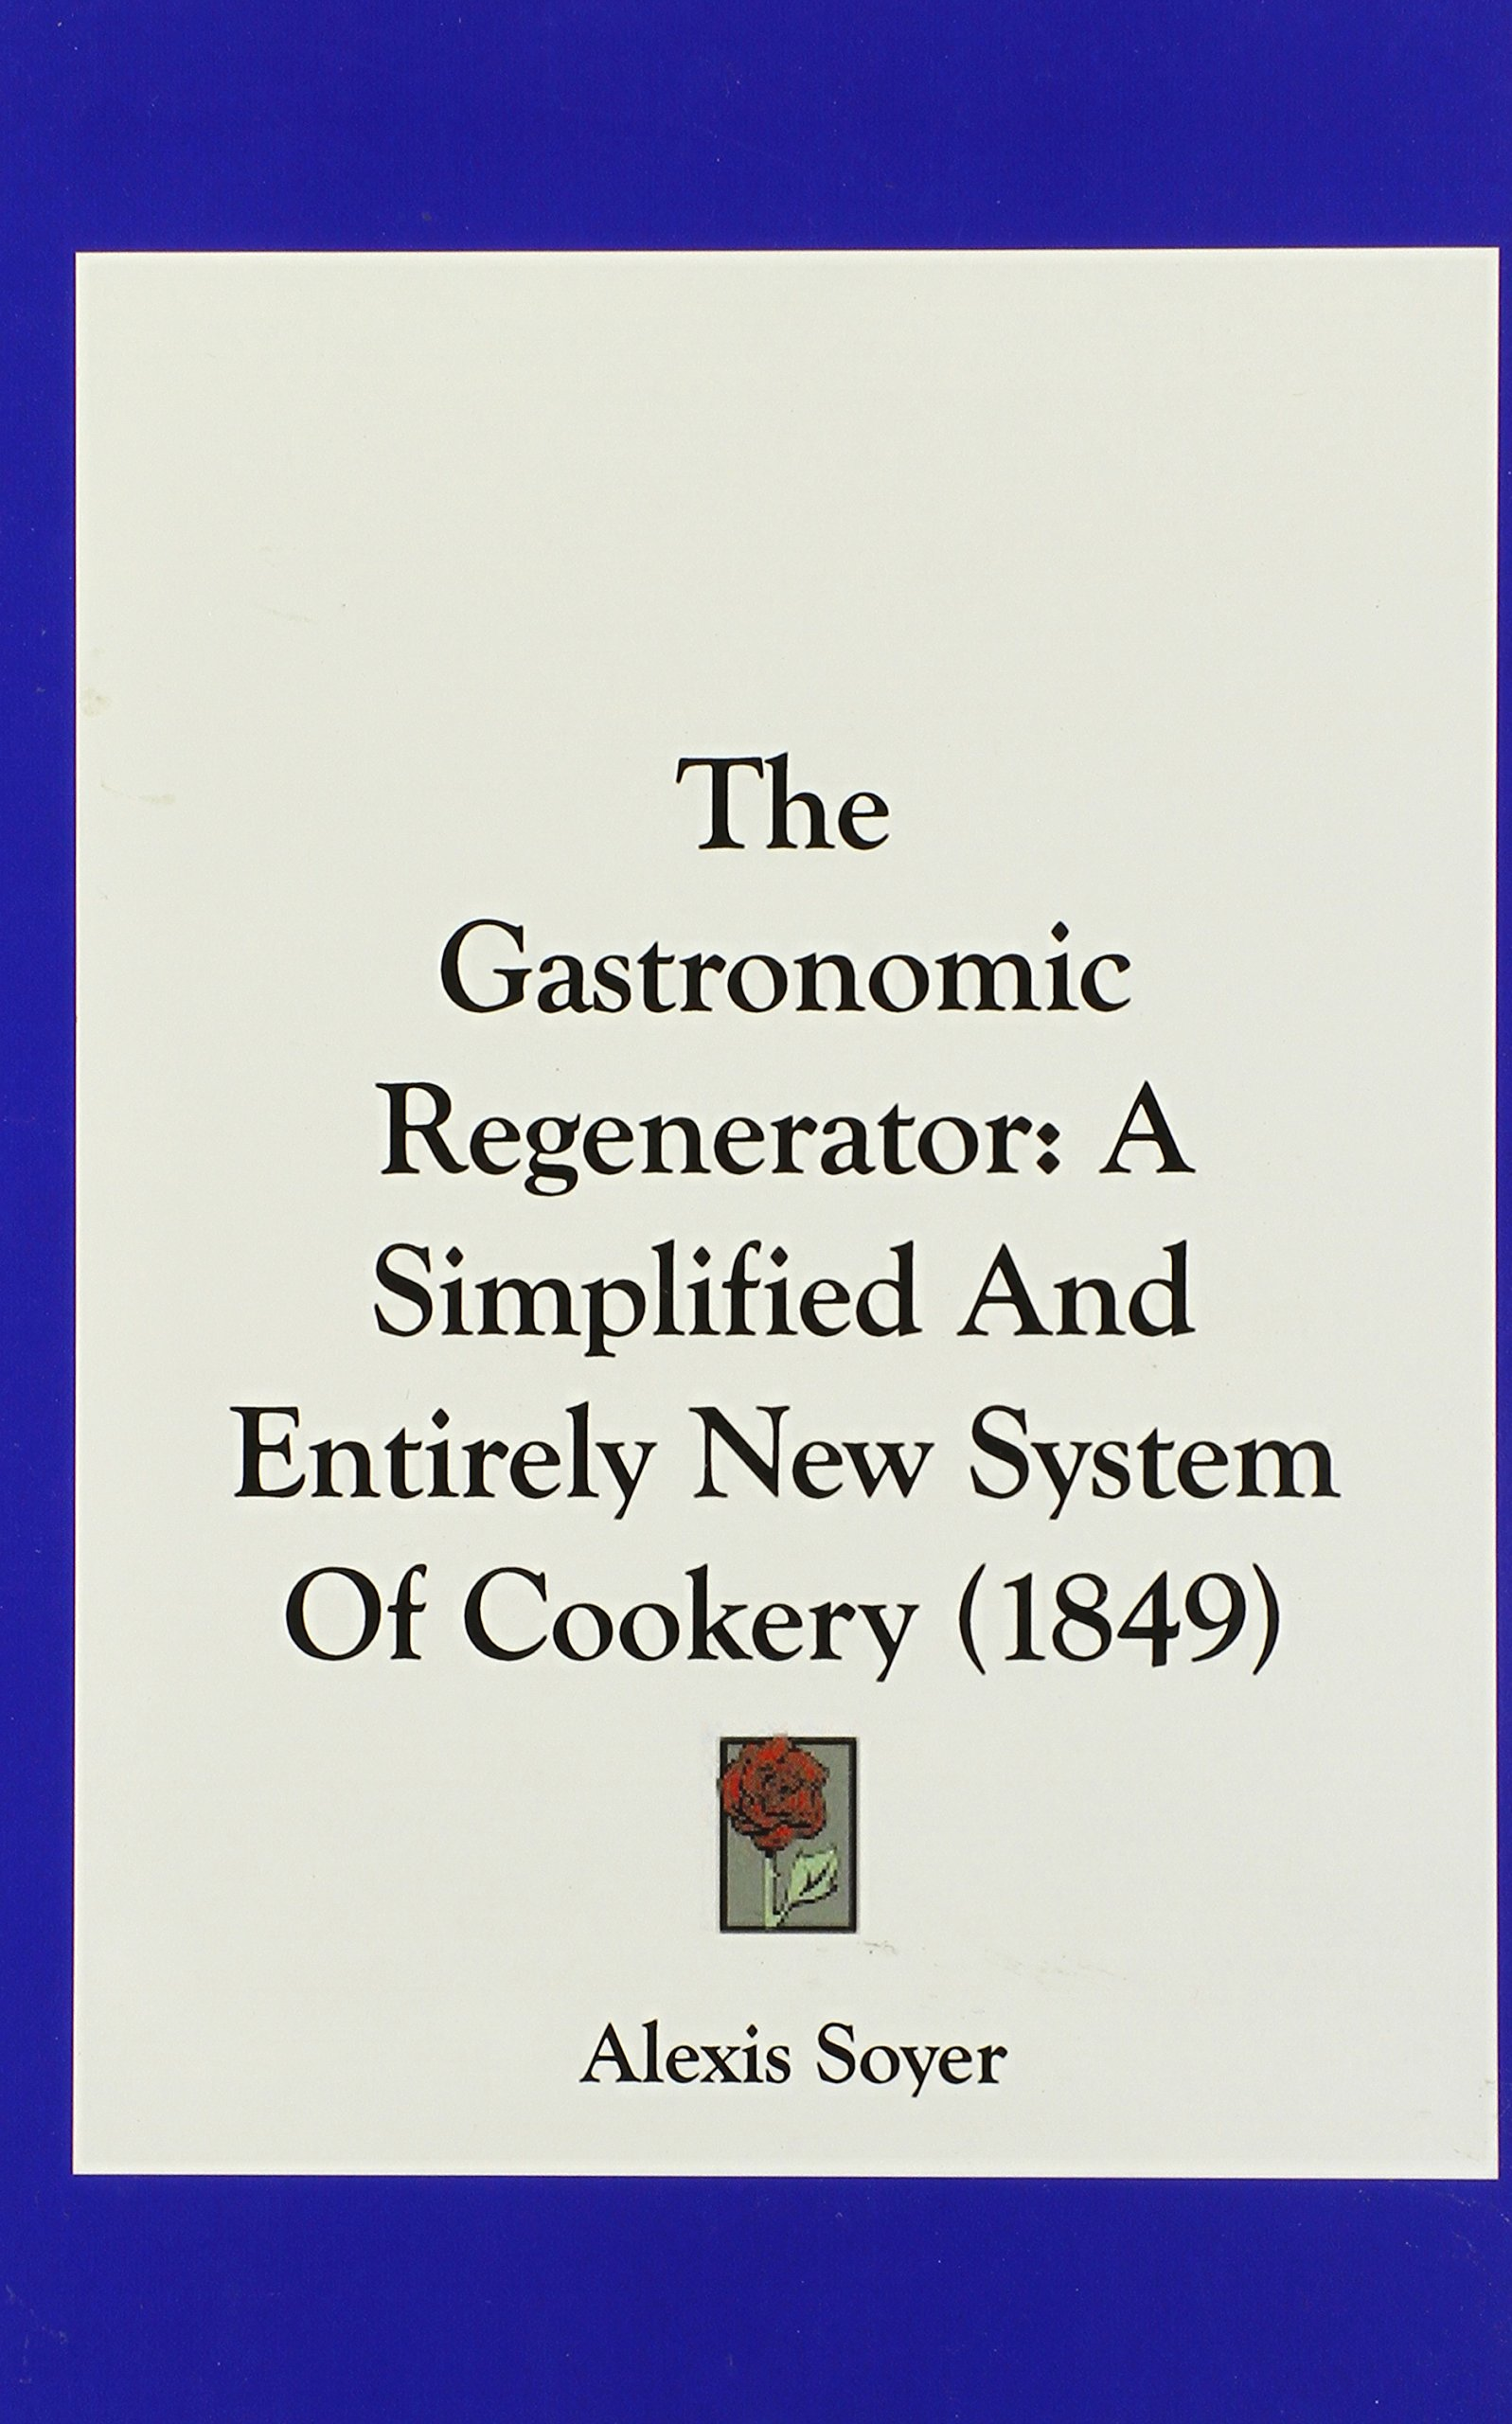 Download The Gastronomic Regenerator: A Simplified and Entirely New System of Cookery (1849) ebook